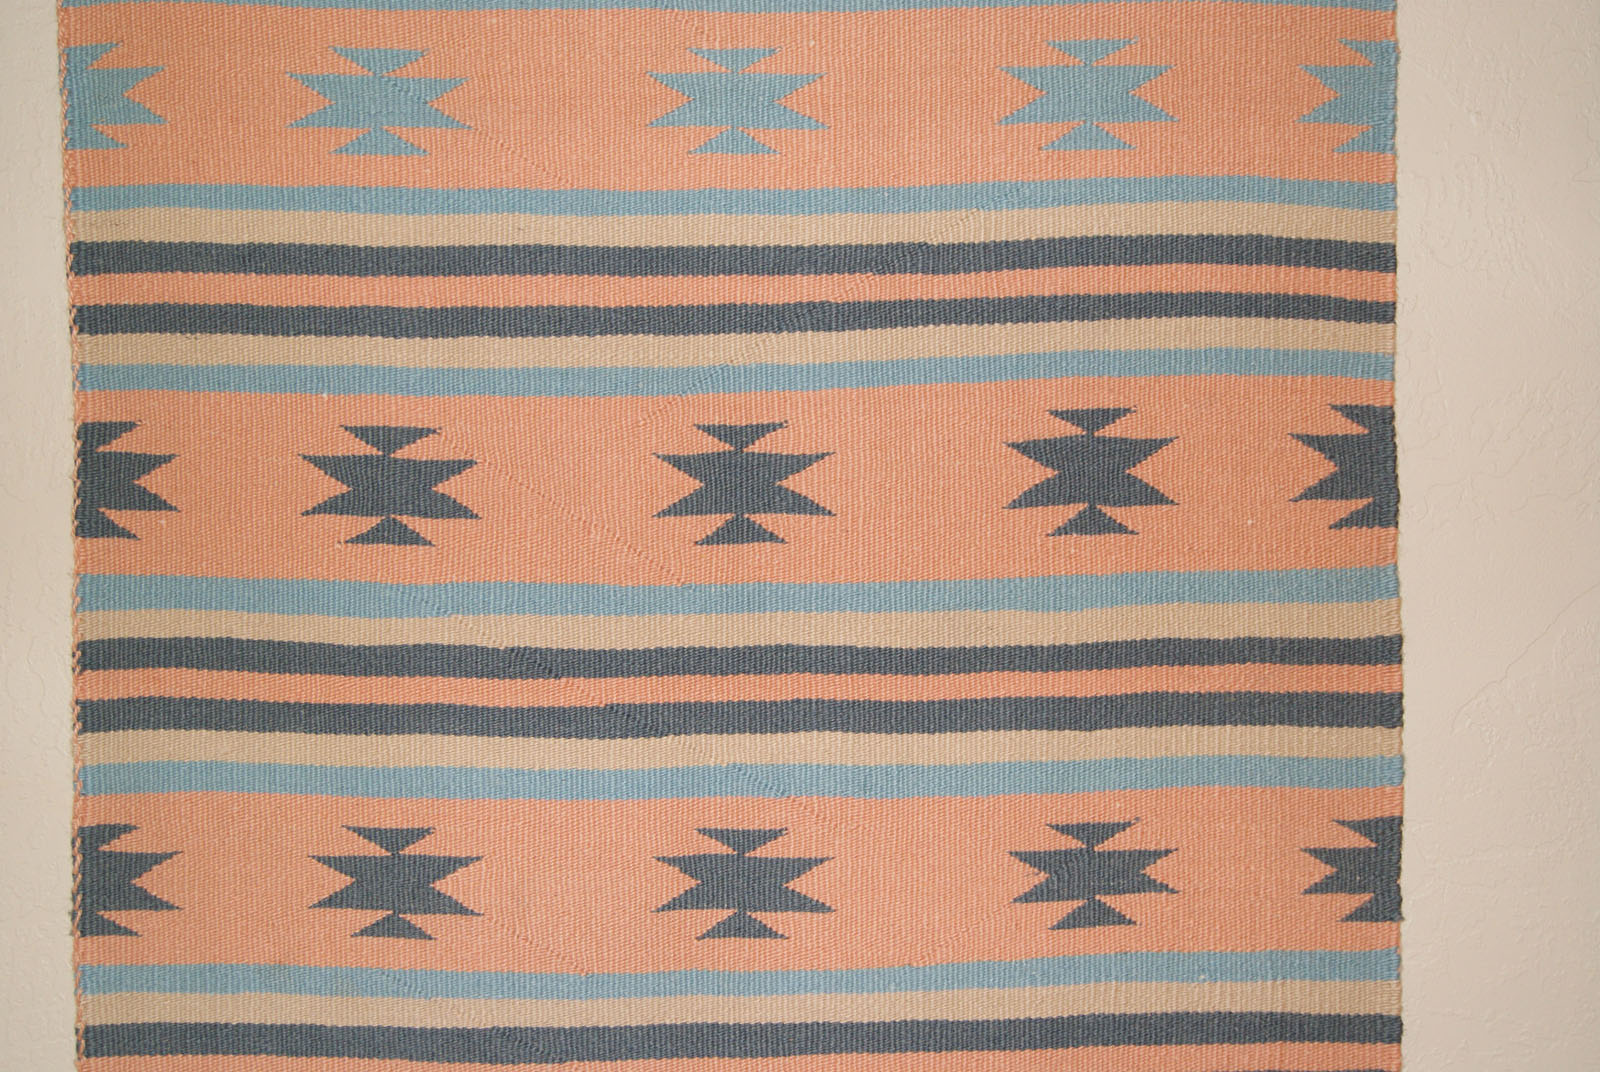 Chinle Banded Navajo Saddle Blanket With Chinle Stars